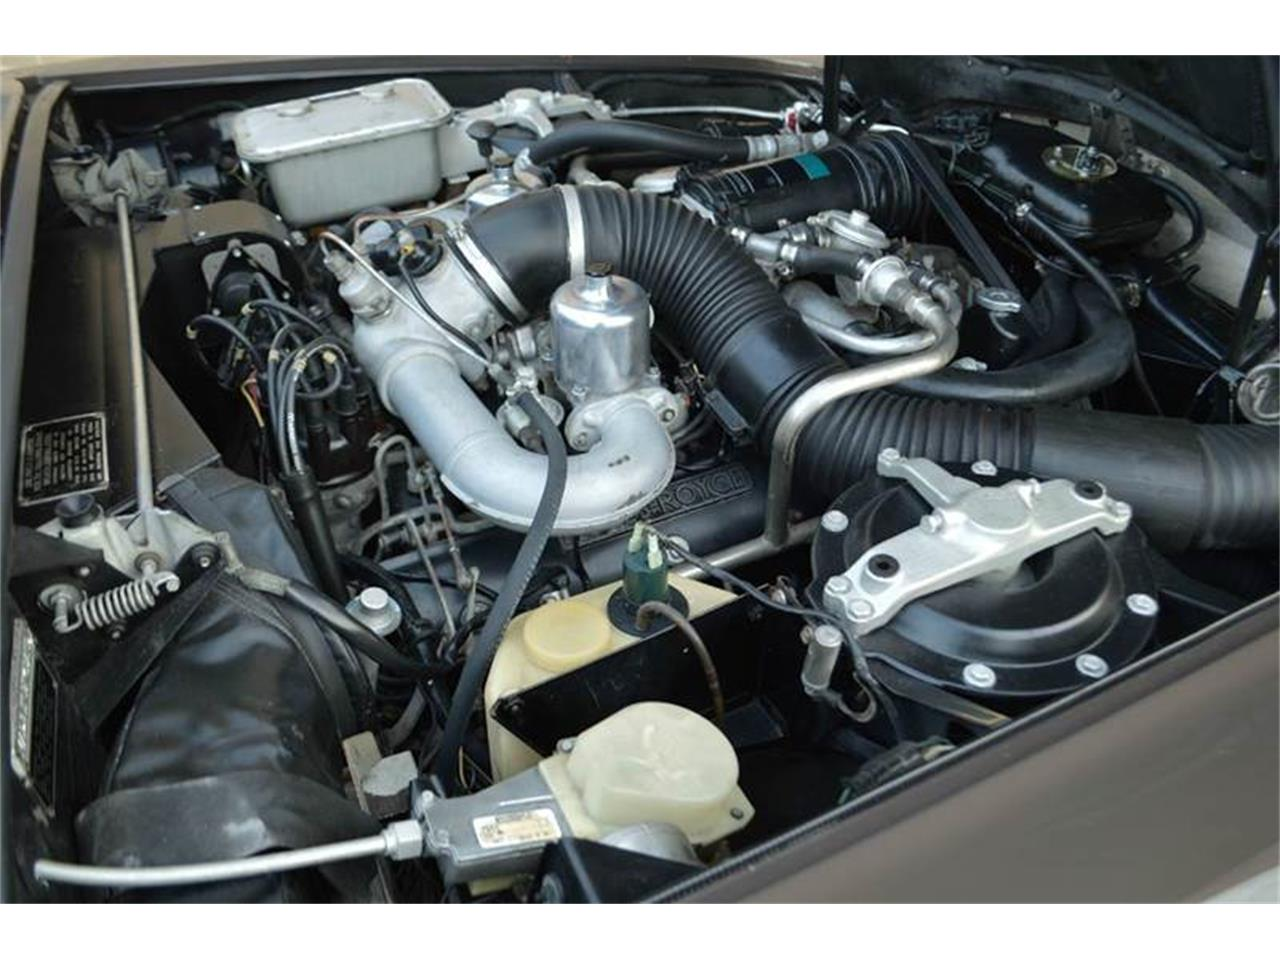 Large Picture of 1969 Rolls-Royce Silver Shadow located in Illinois - $54,000.00 Offered by Park-Ward Motors - MO62